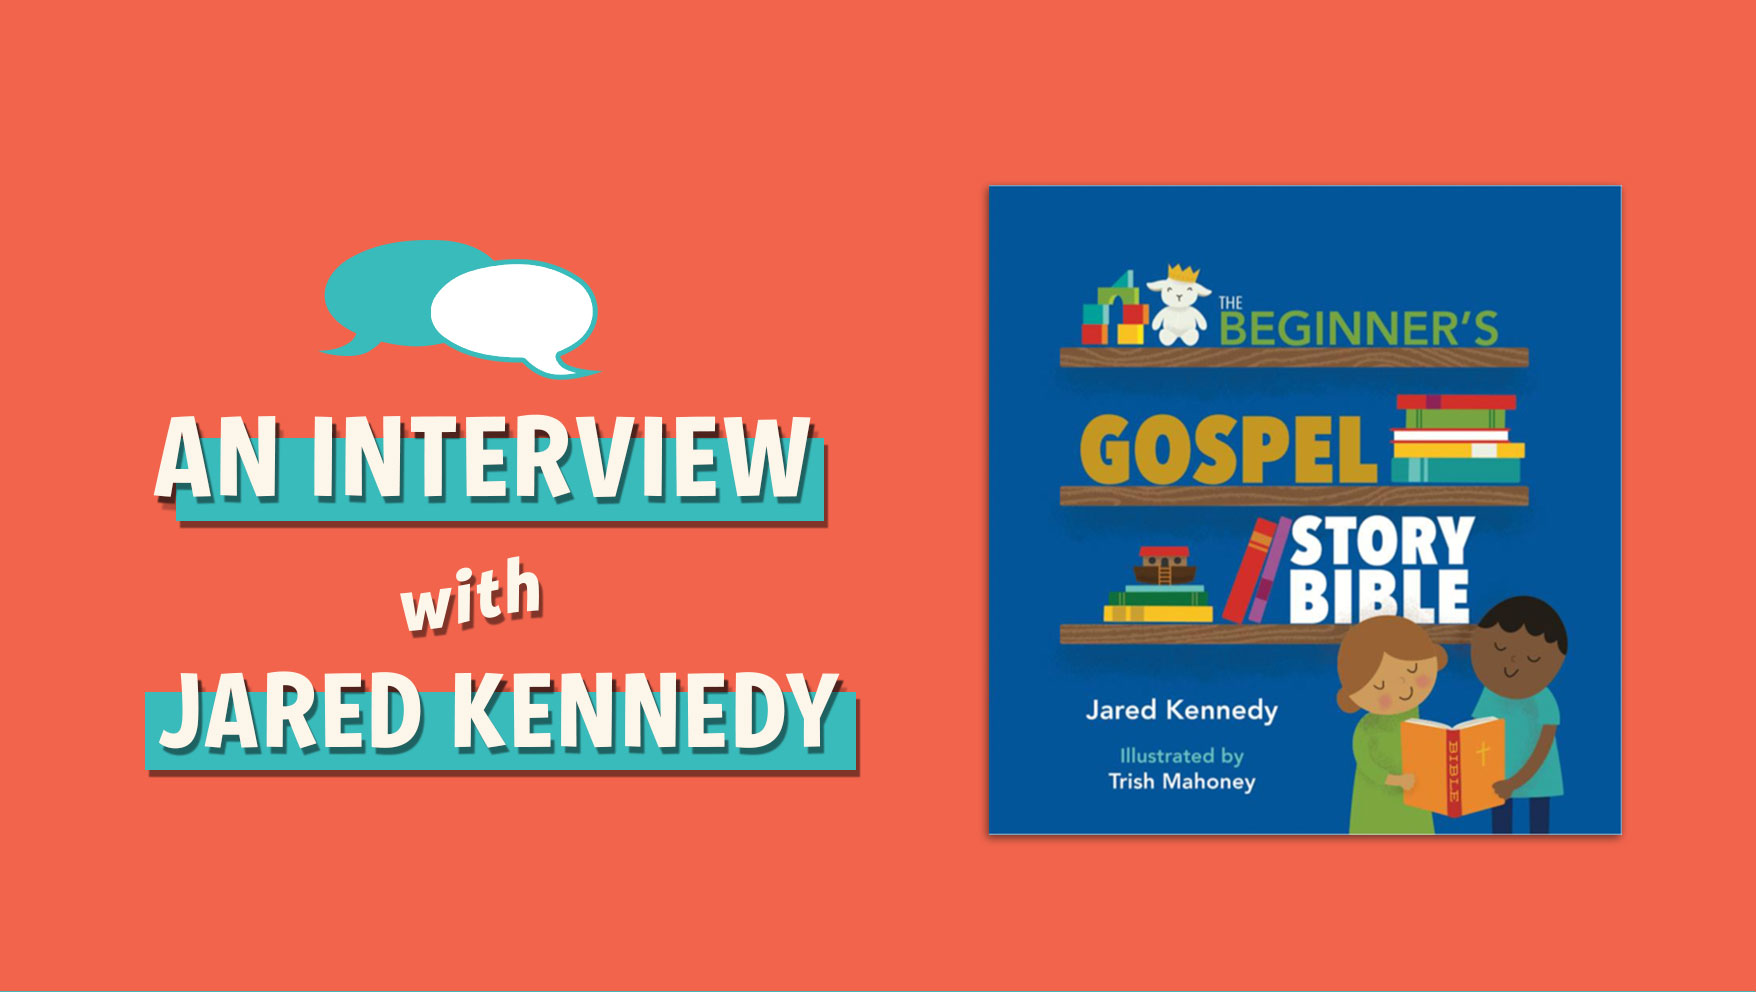 An Interview with Jared Kennedy, author of The Beginner's Gospel Story Bible